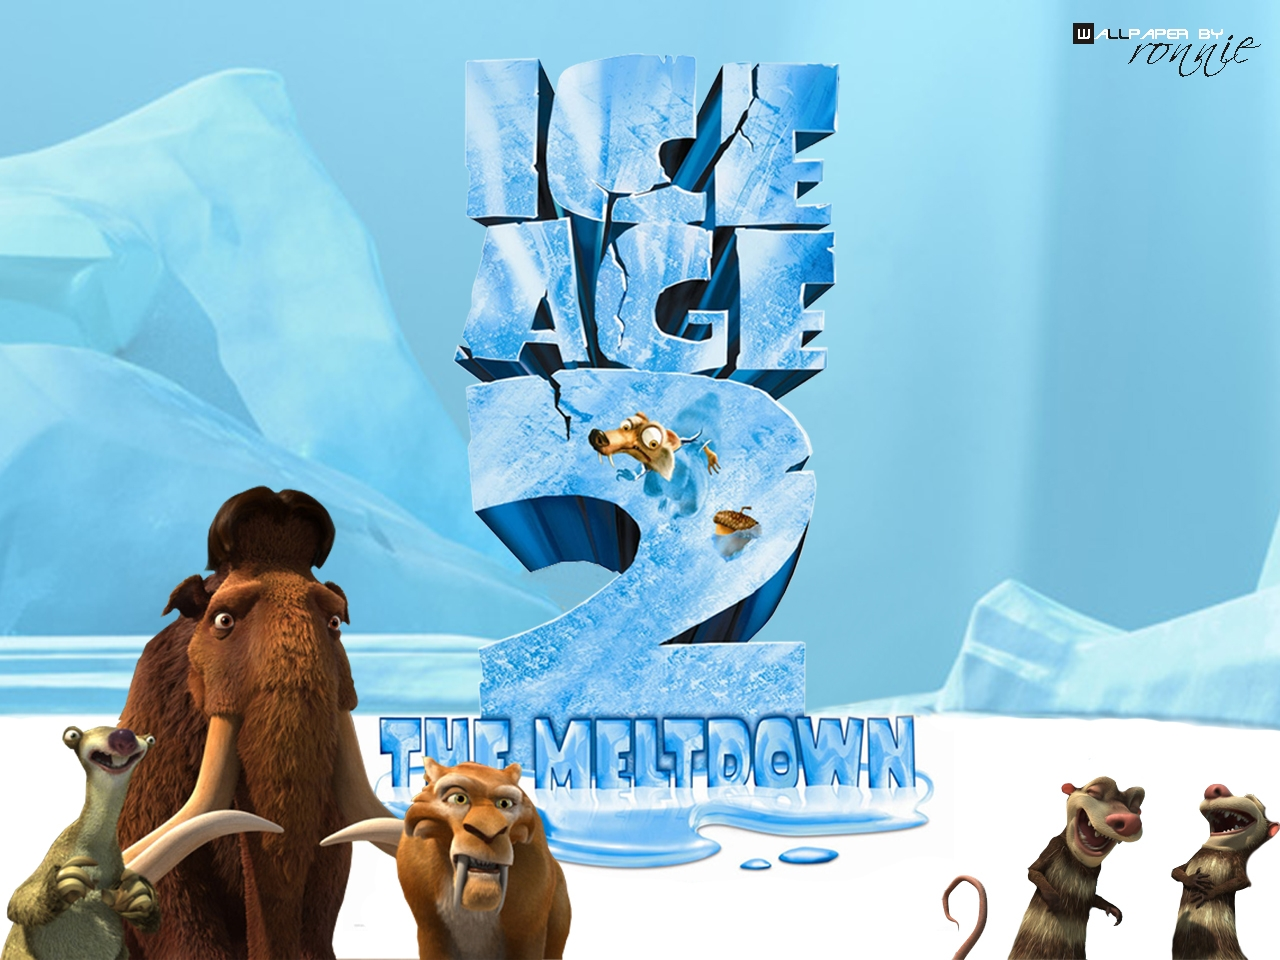 Ice Age 2 ice age 627023 1280 960 Ice Age 3 Dawn of the Dinosaurs Wallpapers